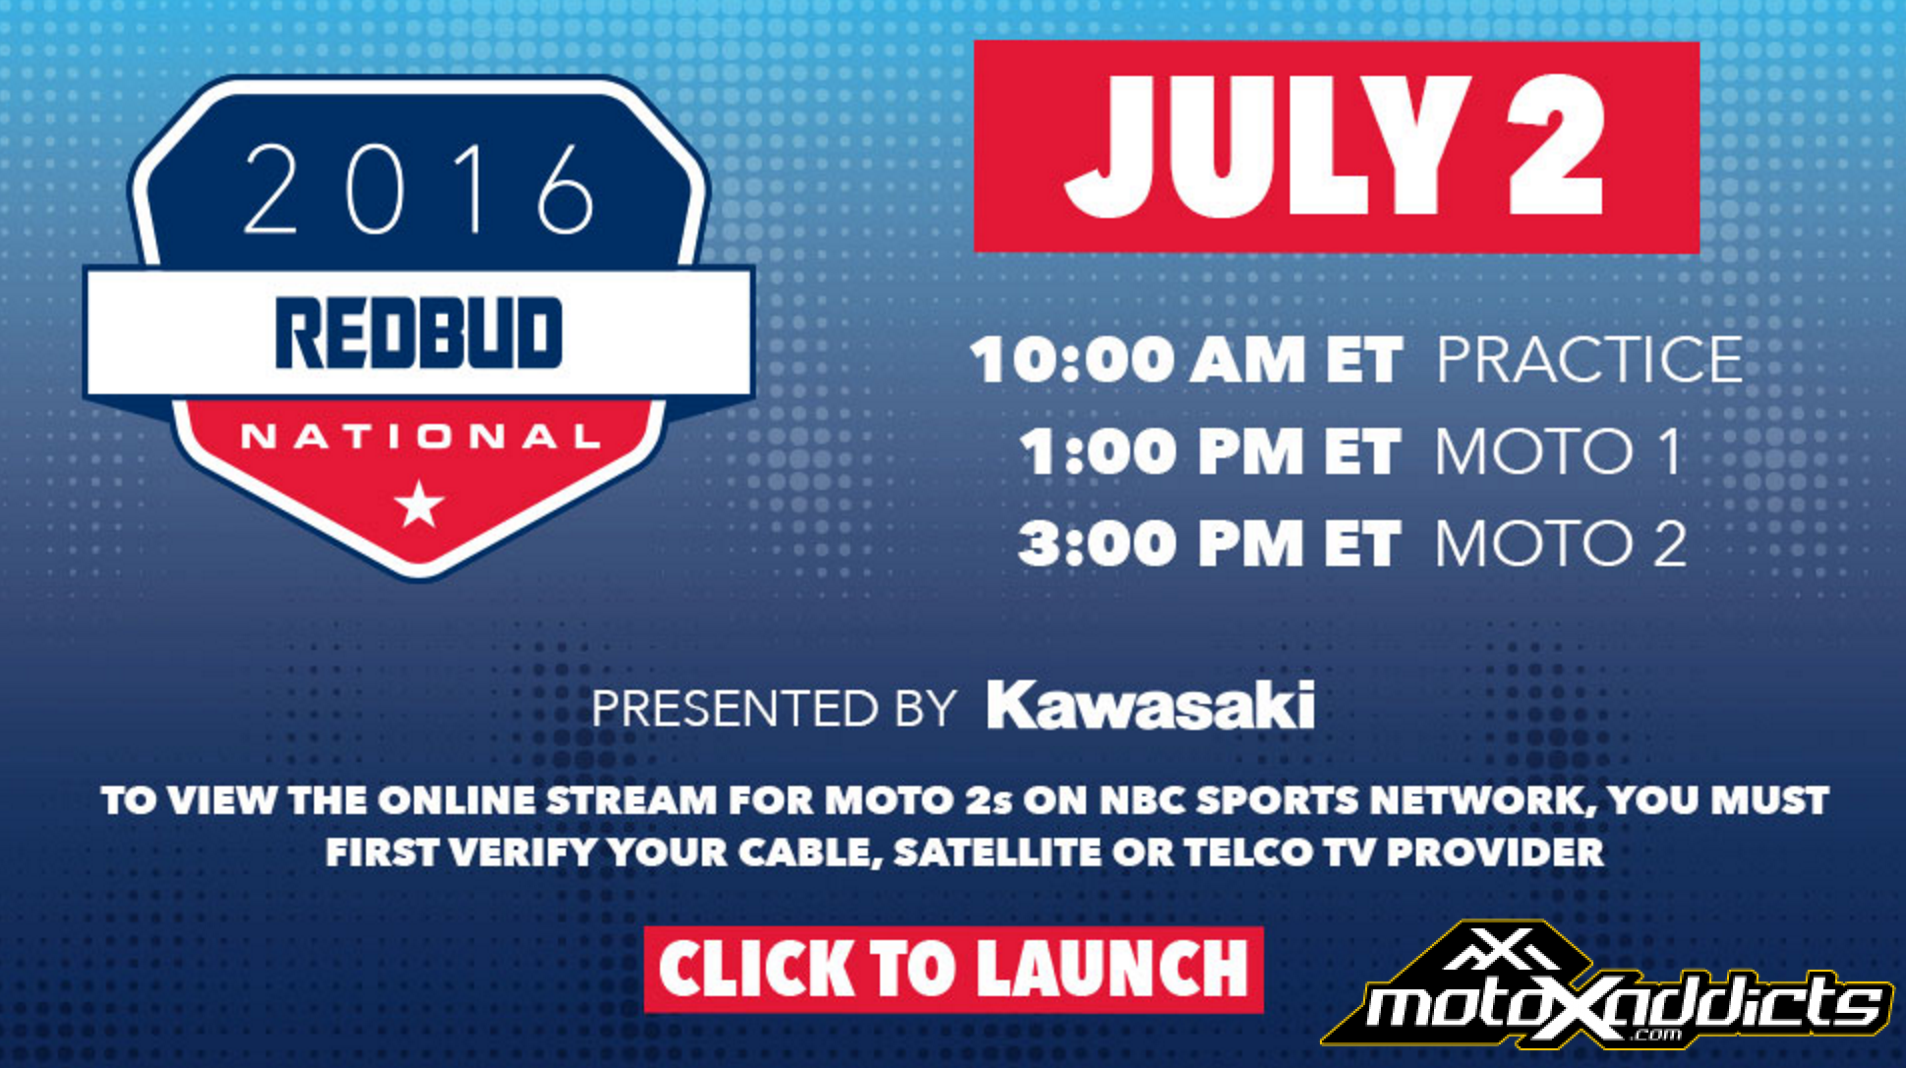 motoxaddicts | 2016 redbud national tv and internet broadcast schedule